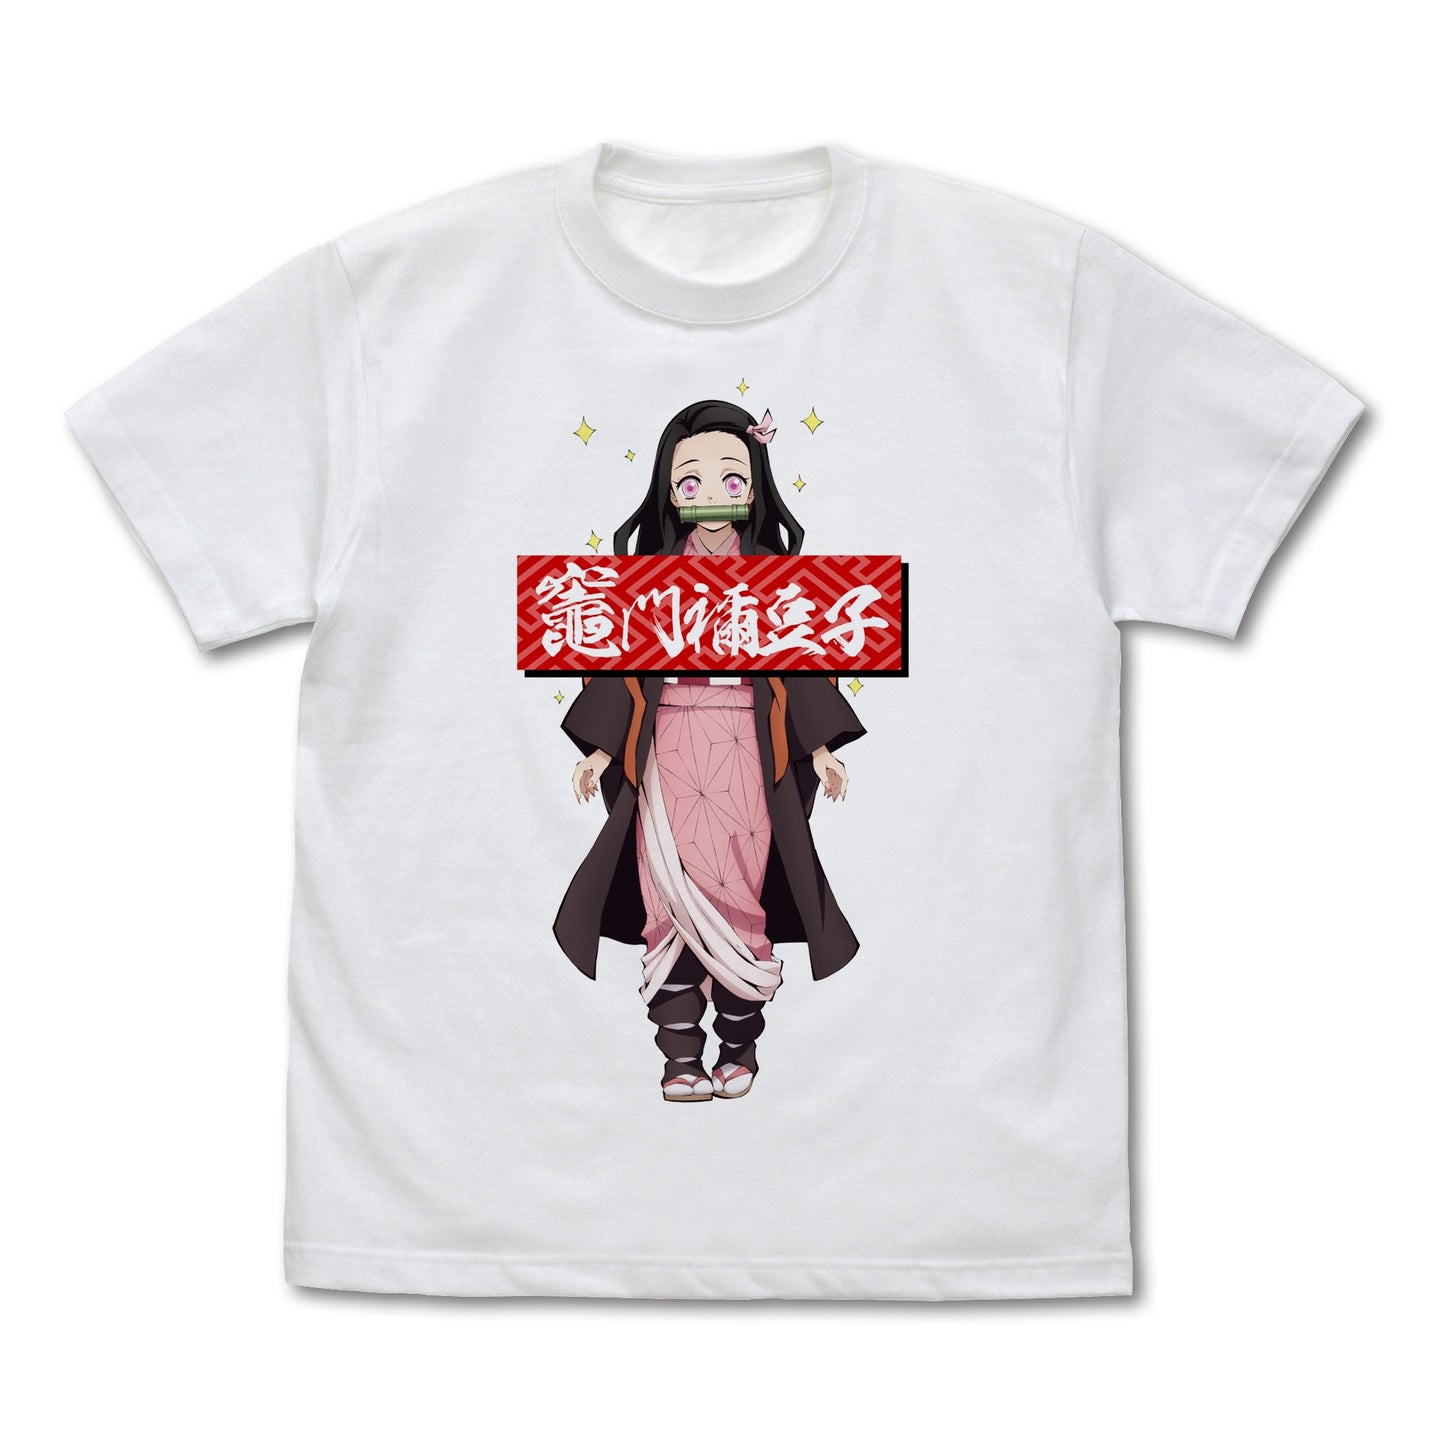 【Demon Slayer: Kimetsu no Yaiba】Nezuko Fullcolor T-shirts 【COSPA】NEW ITEM